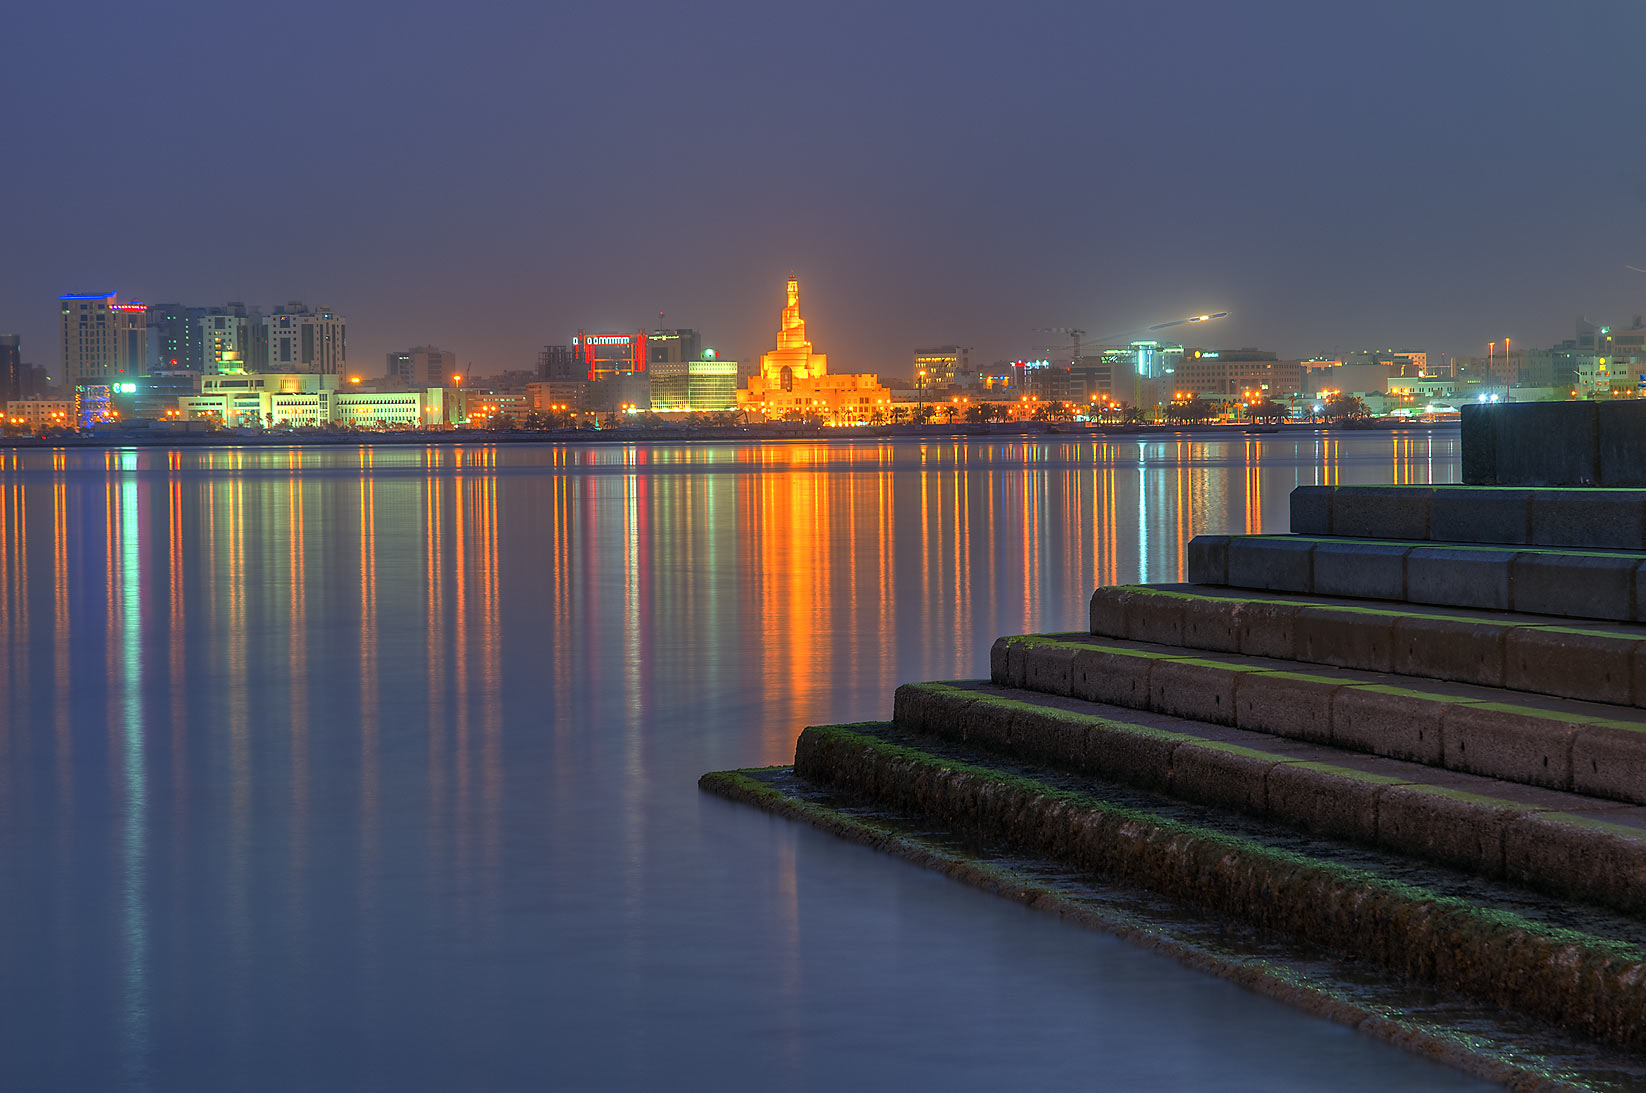 Reflections of Spiral Mosque from Corniche...low tide at morning dusk. Doha, Qatar